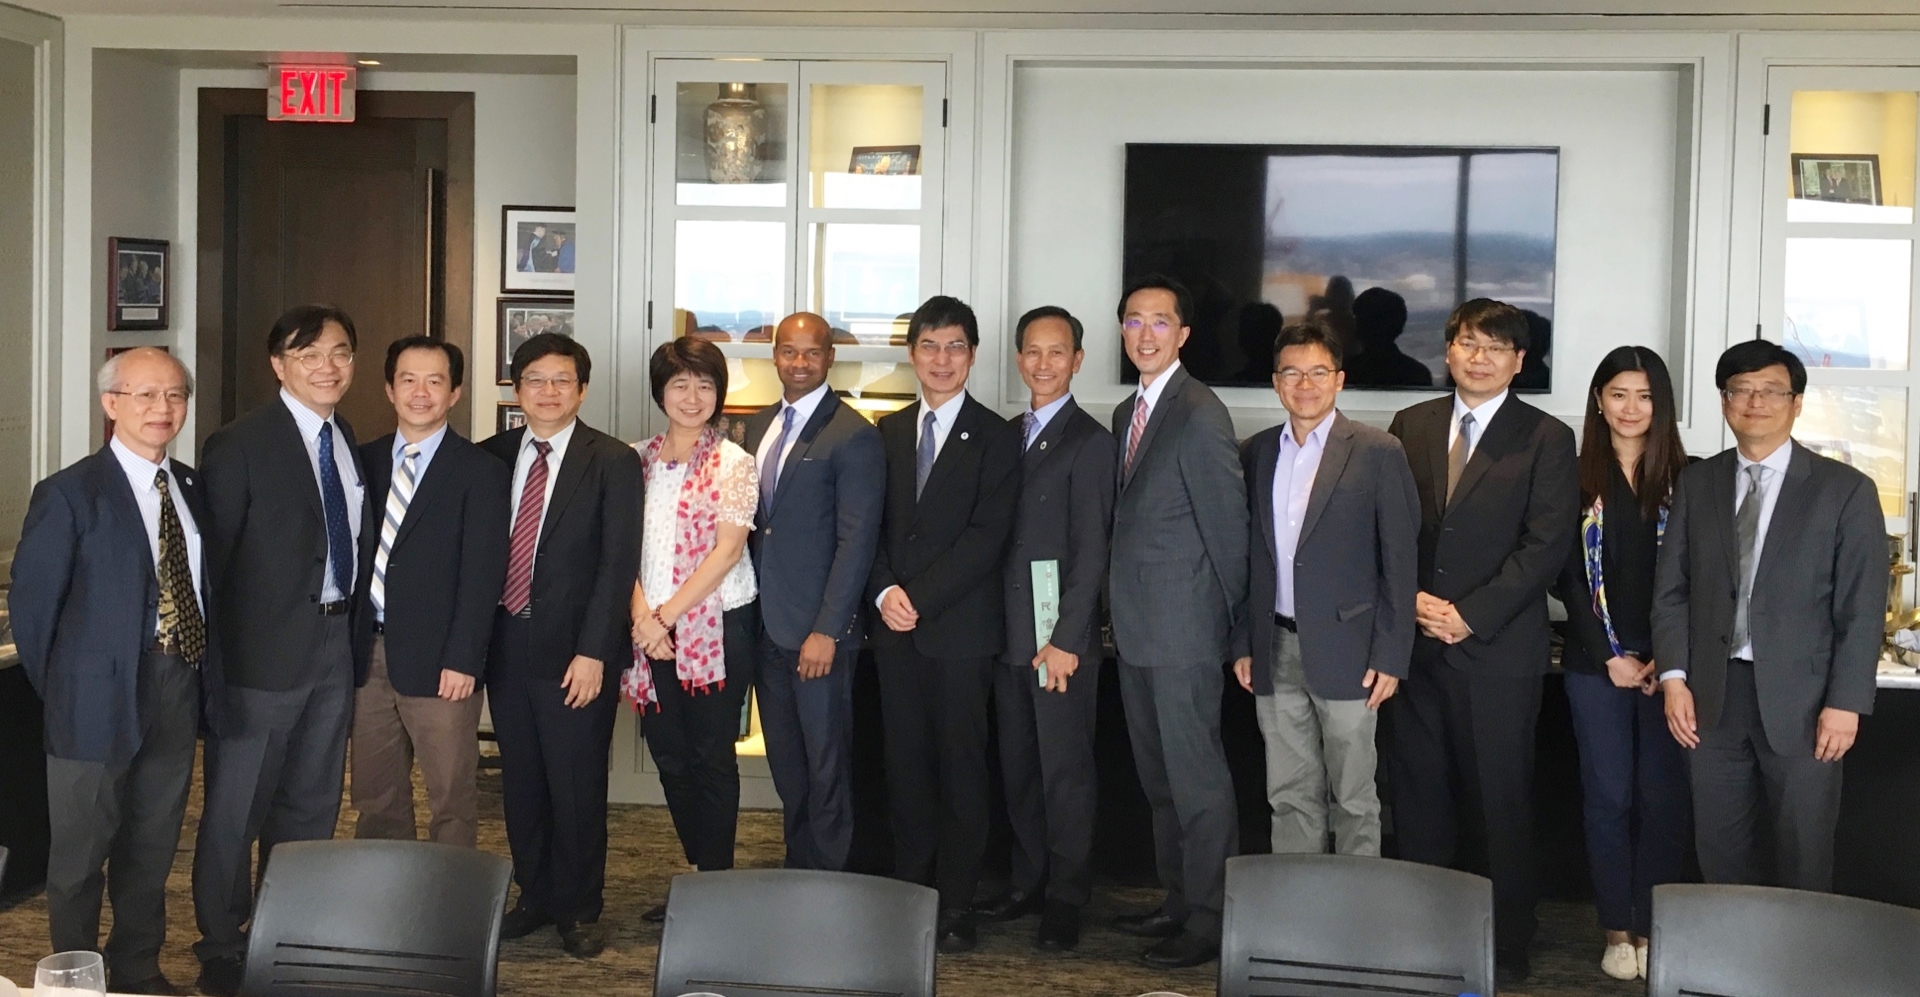 A work lunch with Mr. Damon Cox, Assistant Secretary of Technology, Innovation and Entrepreneurship and Mr. Nam Pham, Assistant Secretary of Business Development.